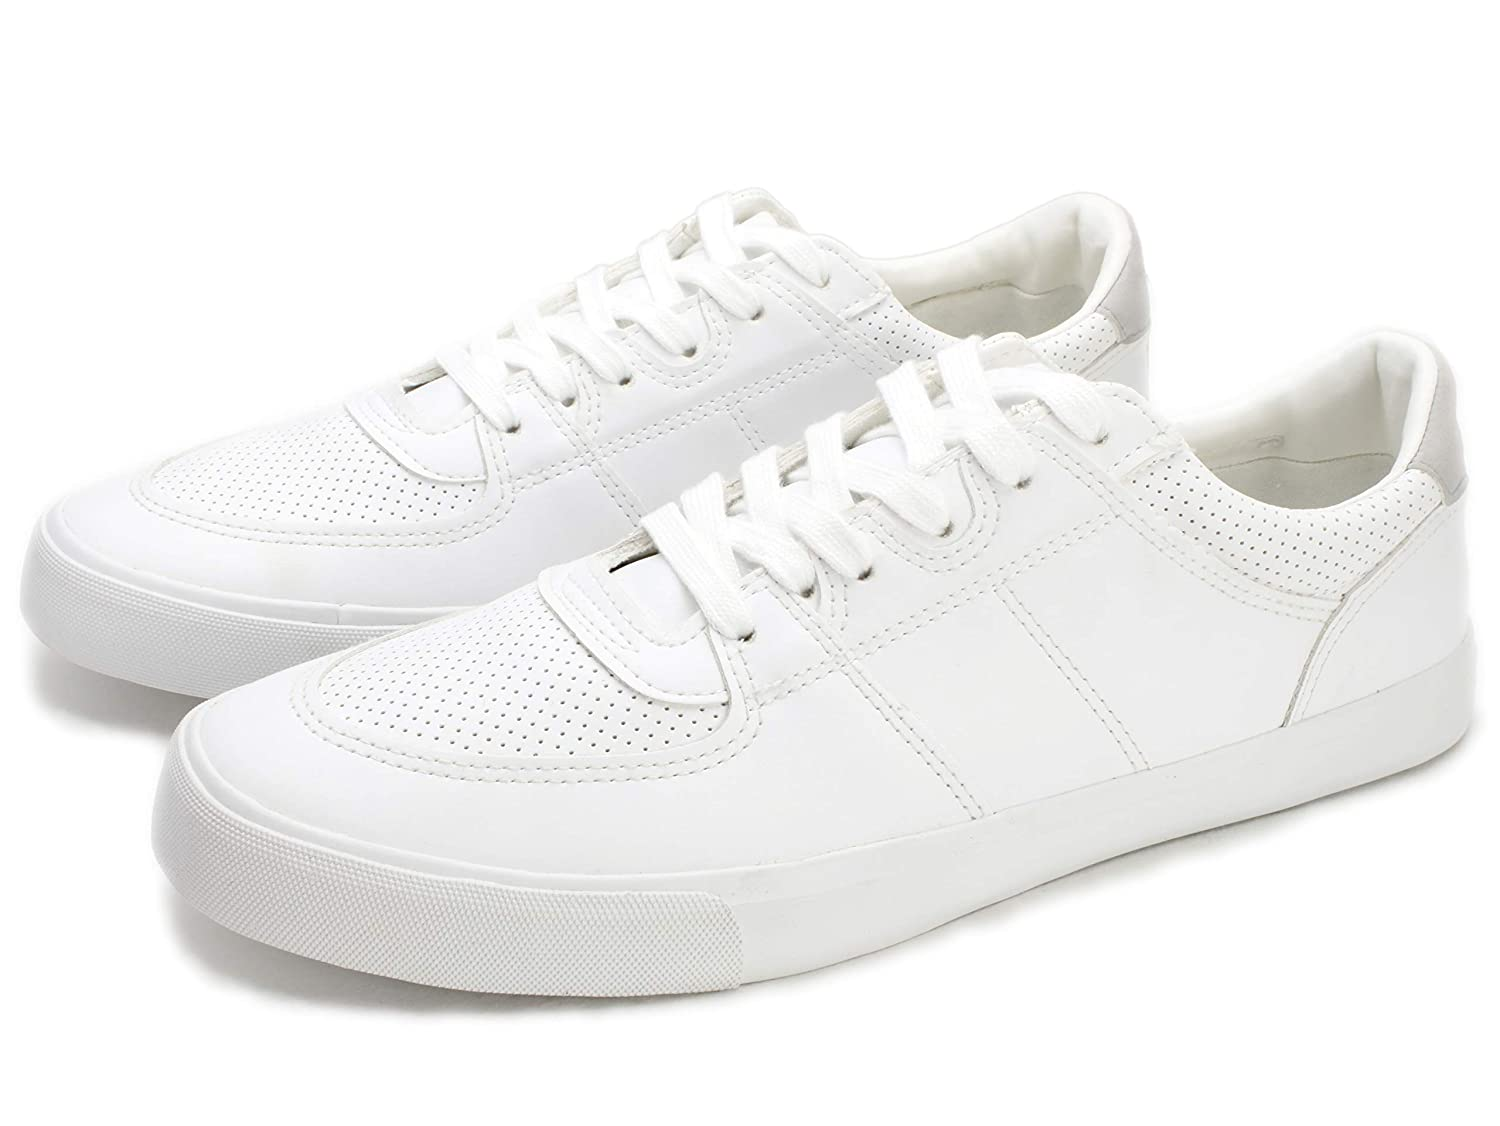 Breathable PU Synthetic Leather Upper